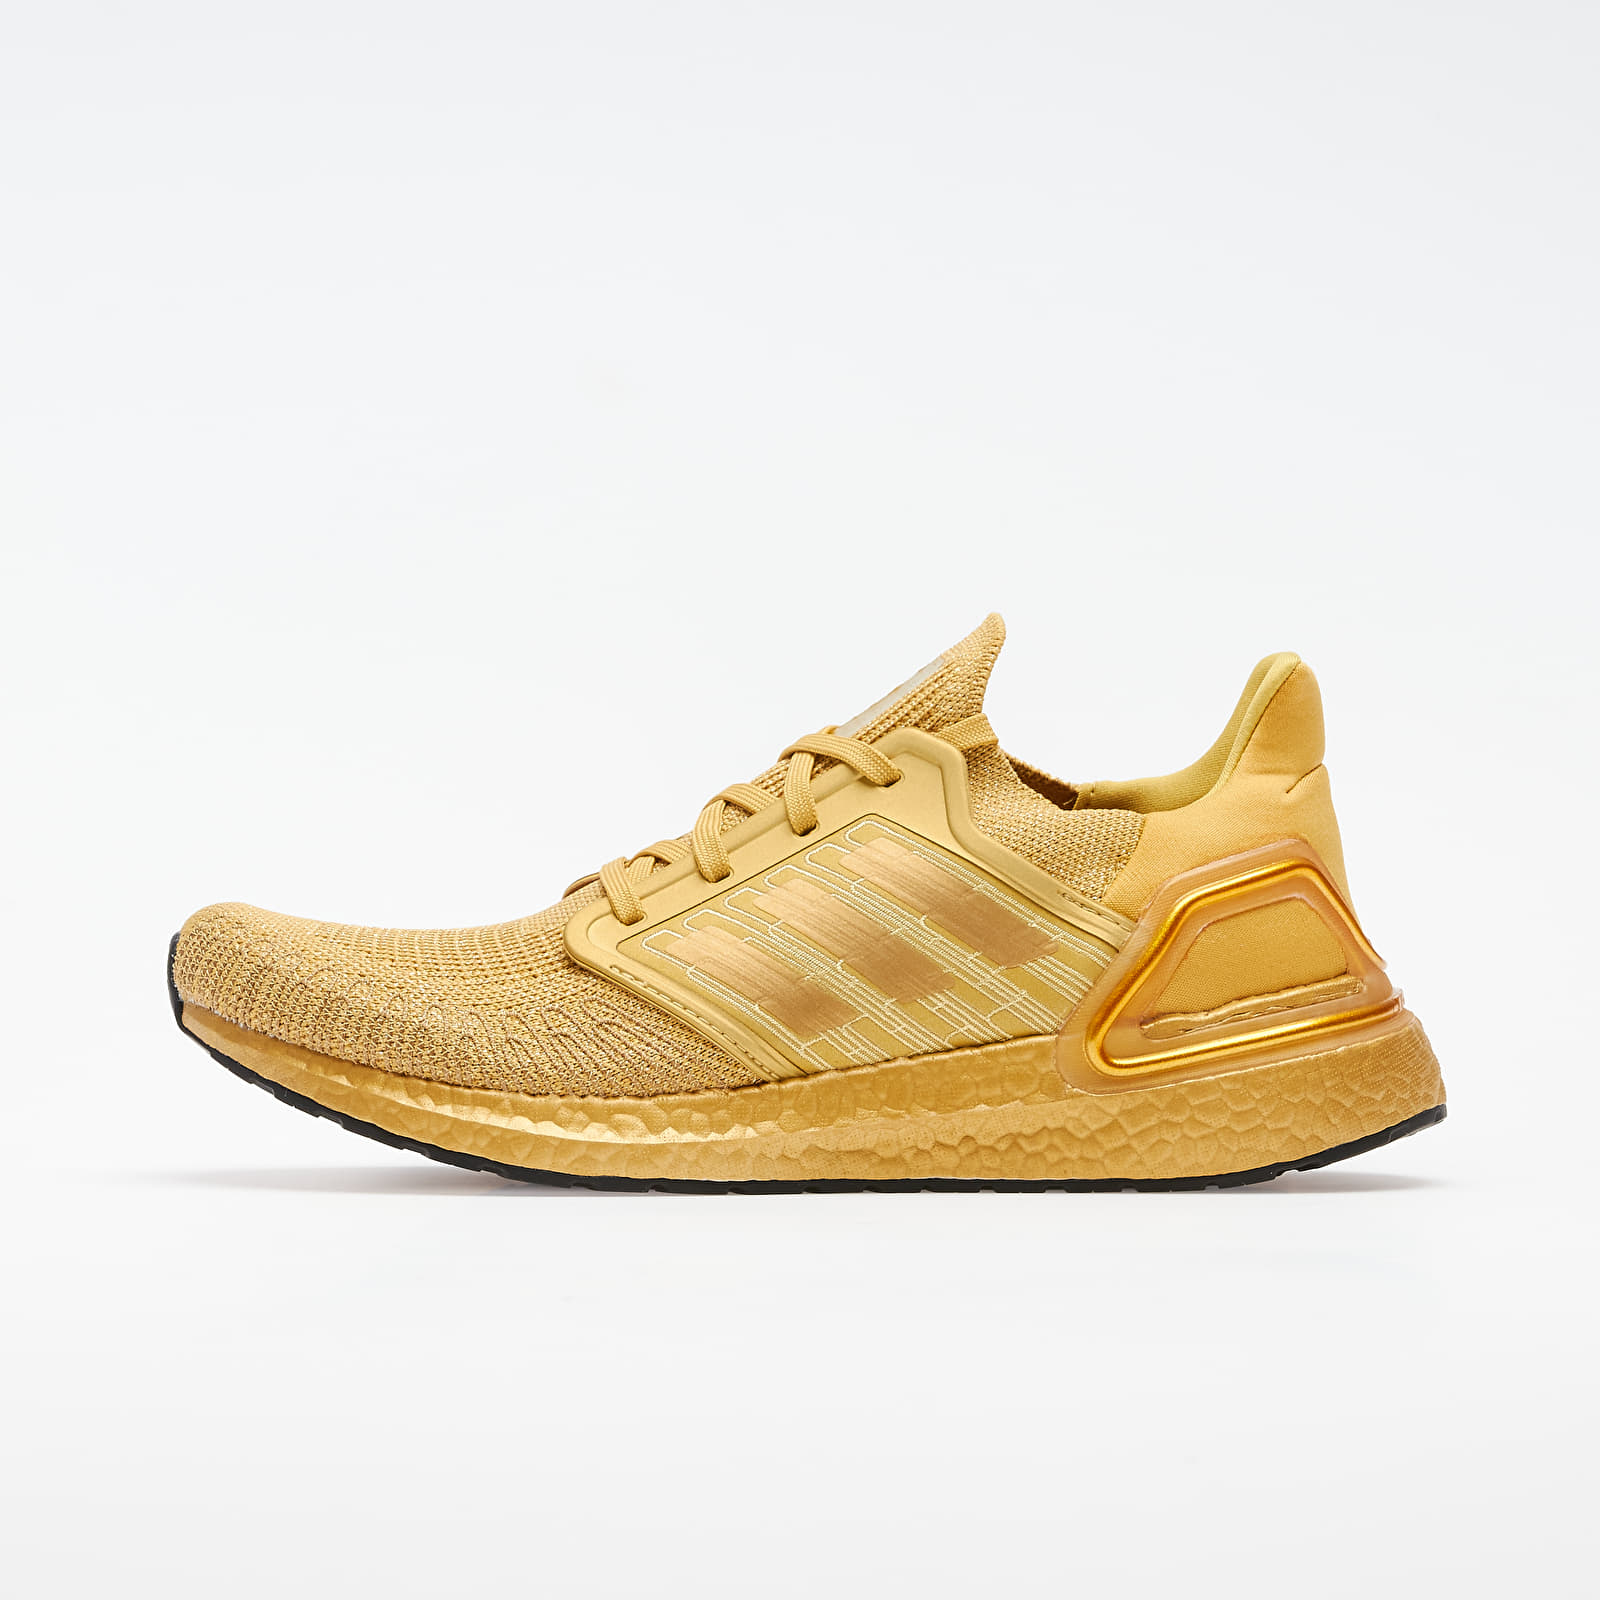 Férfi cipők adidas UltraBOOST 20 Gold Metalic/ Gold Metalic/ Gold Metalic